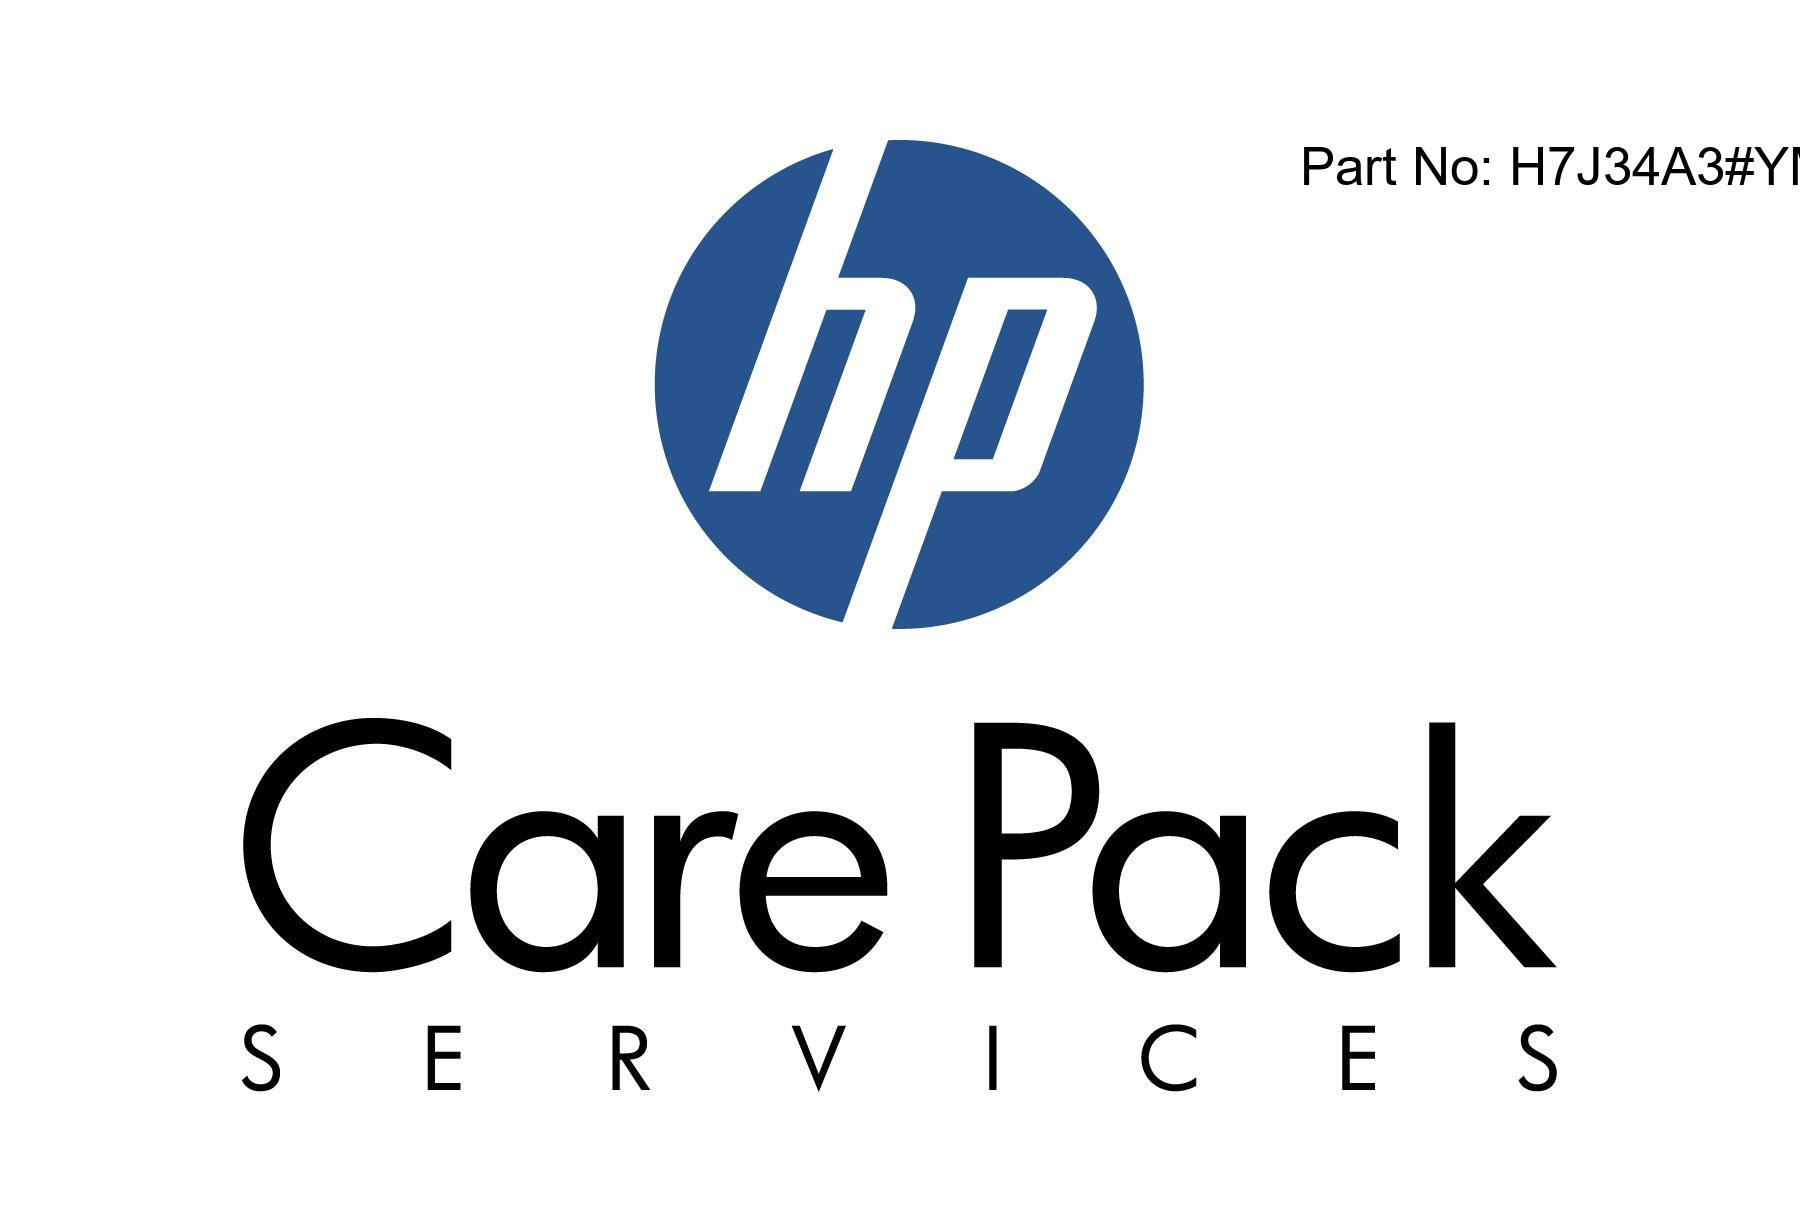 Foundation Care Software Support 24x7 - Technical support - for HPE XP7 Continuous Access to Three Data Center High Availability - 1 TB capacity - 0-100 TB - phone consulting - 3 years - 24x7 - response time: 2 h